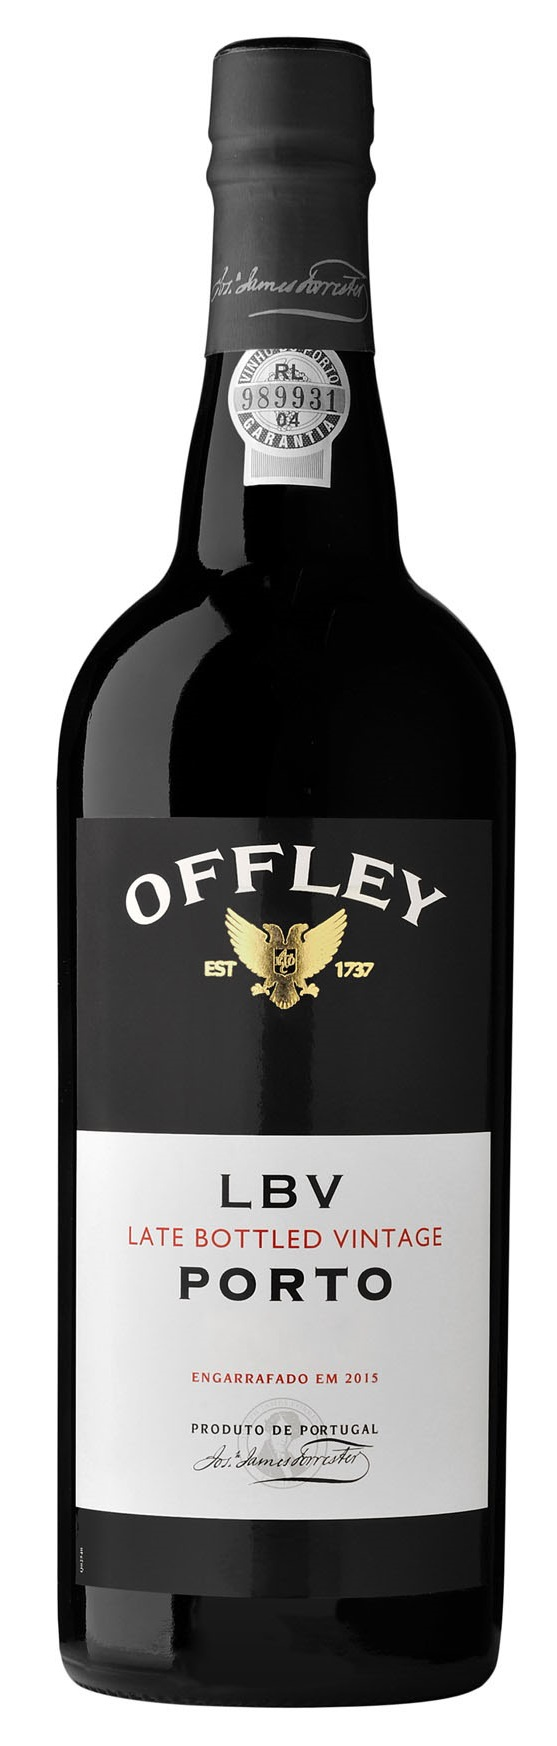 Offley, LBV Port 2013